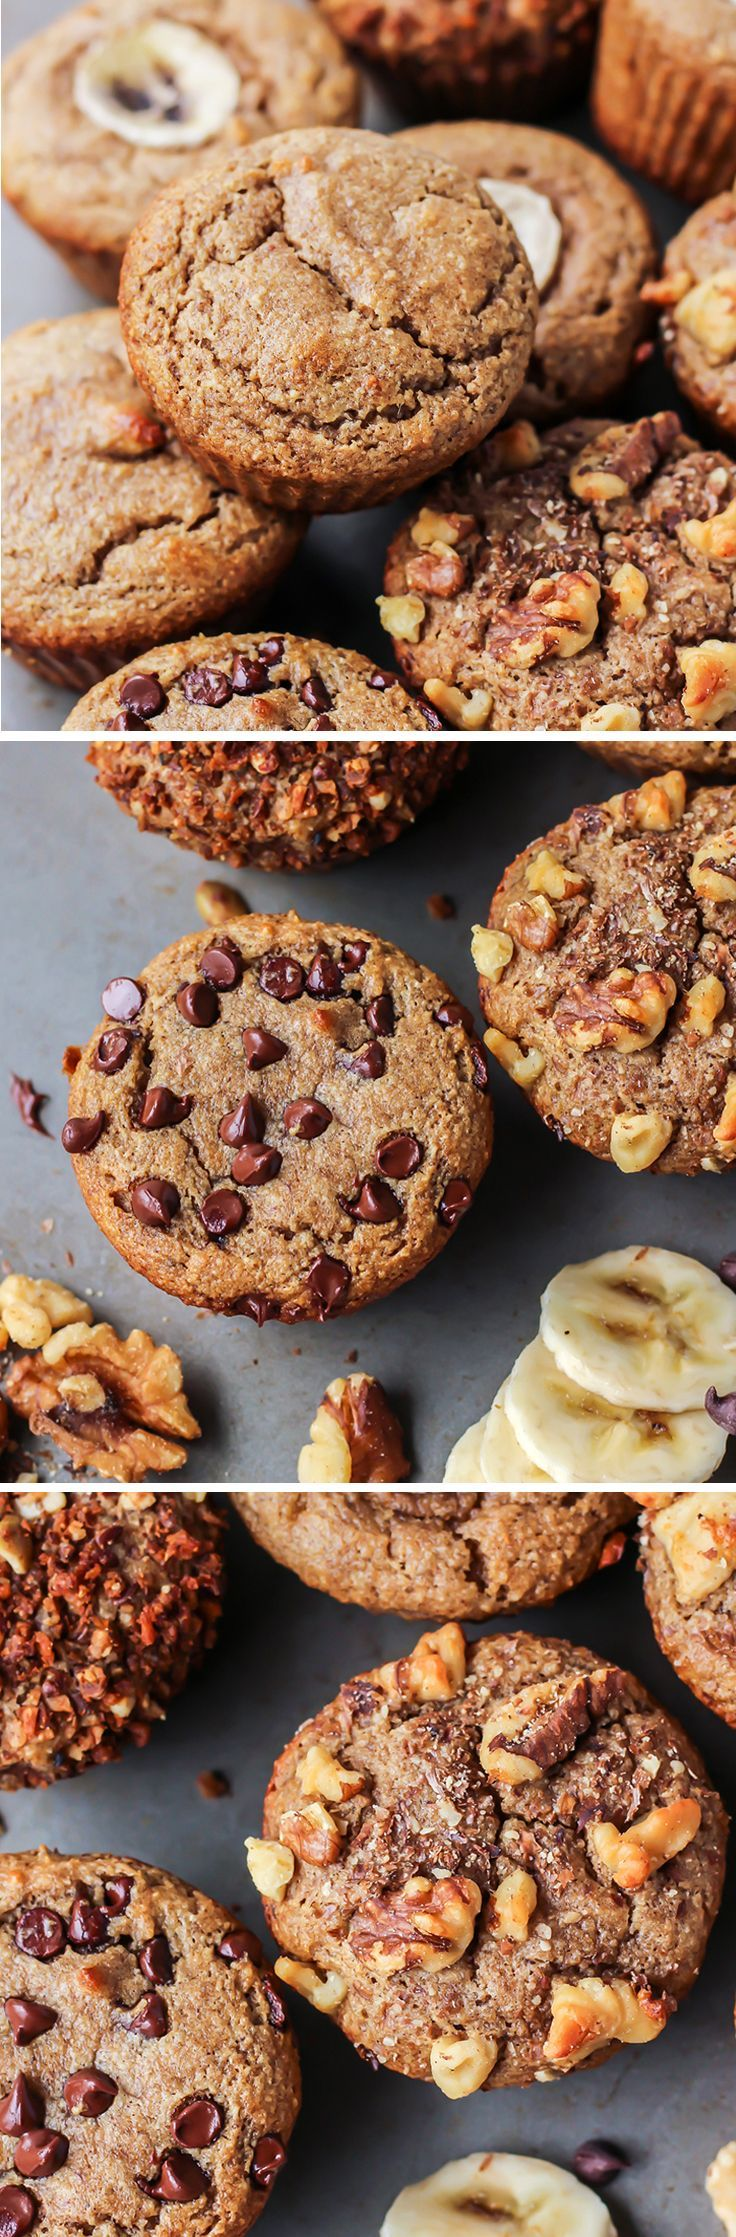 Simple Paleo Banana Muffins using almond flour, nut butter, bananas and an egg. Easy, one bowl with no oil and no added sugars.  >> These are a definite must!!